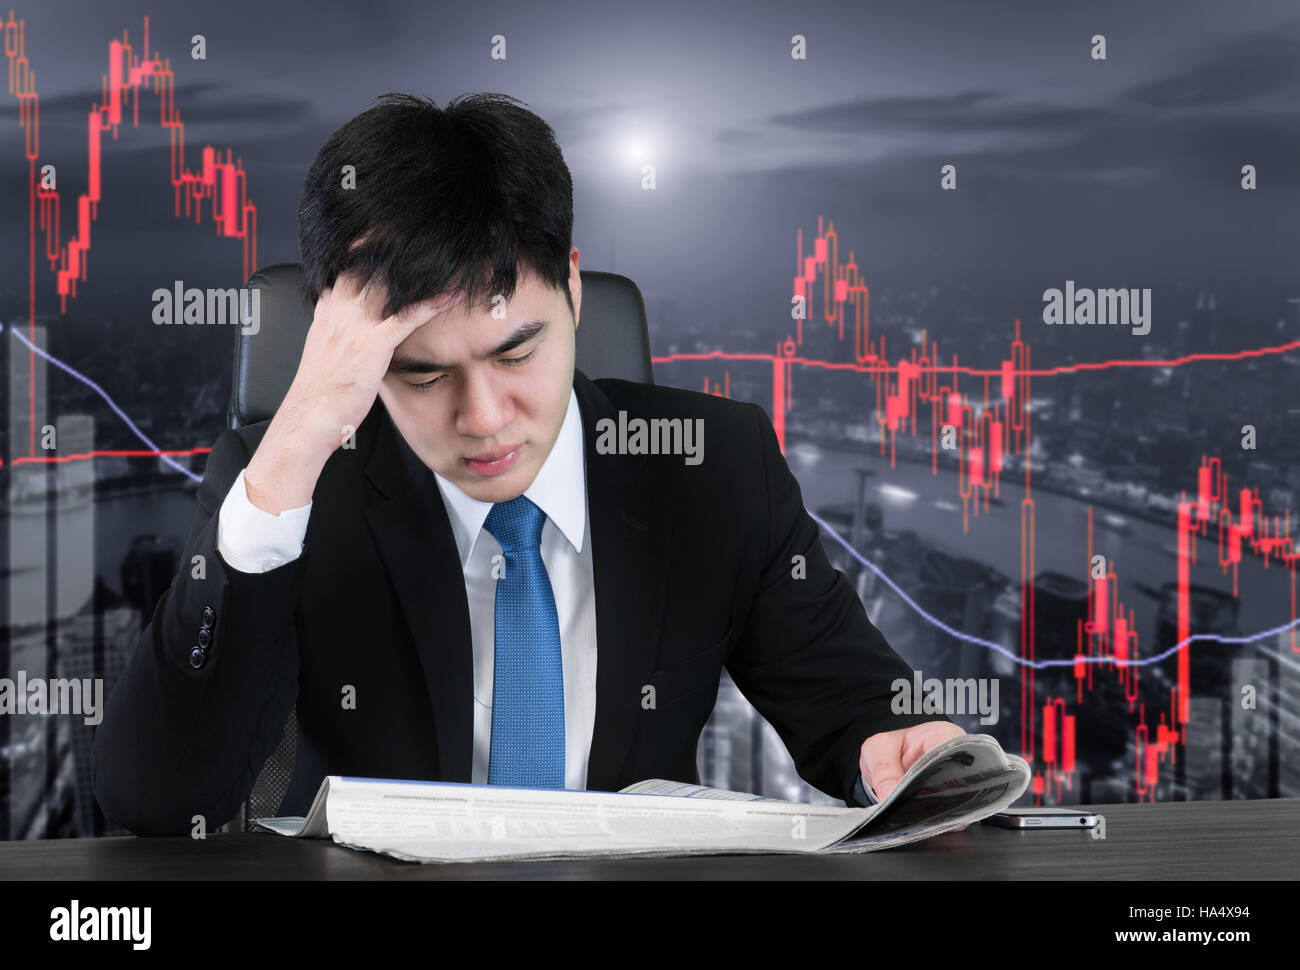 Businessman reading bed news from newspaper for loss value and feel pain strain with trading candlestick chart background. - Stock Image